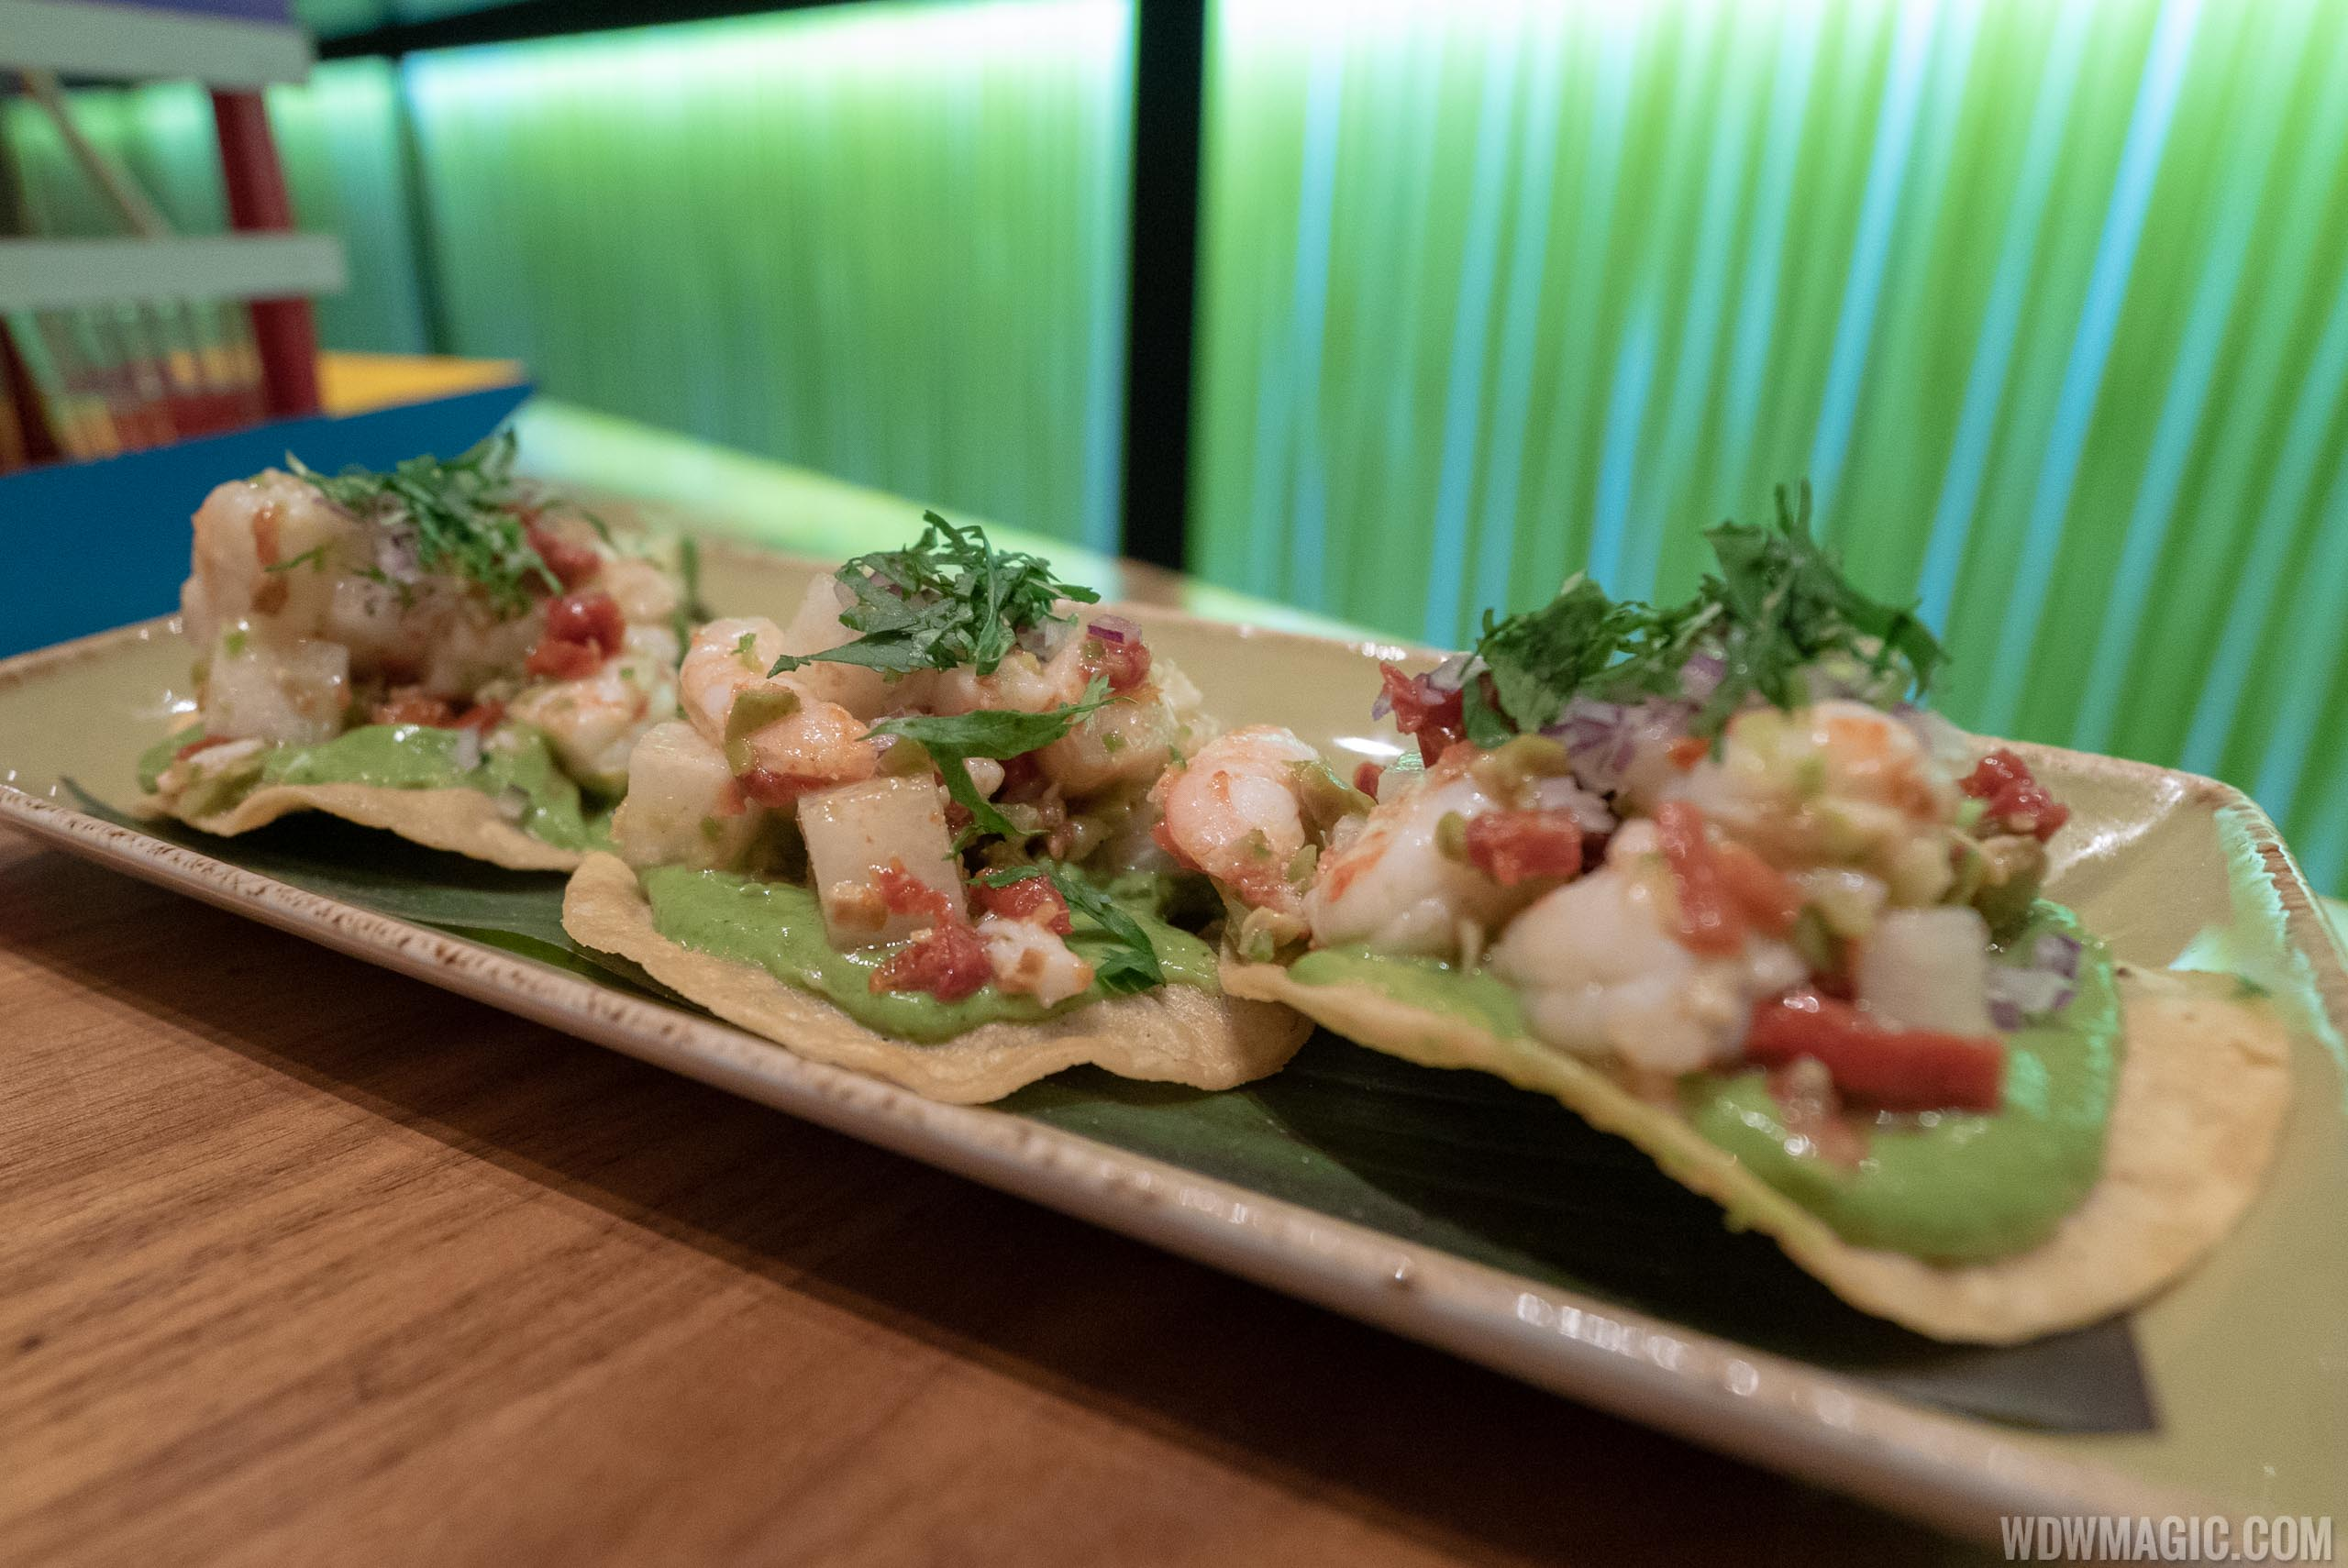 Frontera Cocina - Taste of Mexico City - Shrimp Ceviche Tostadas